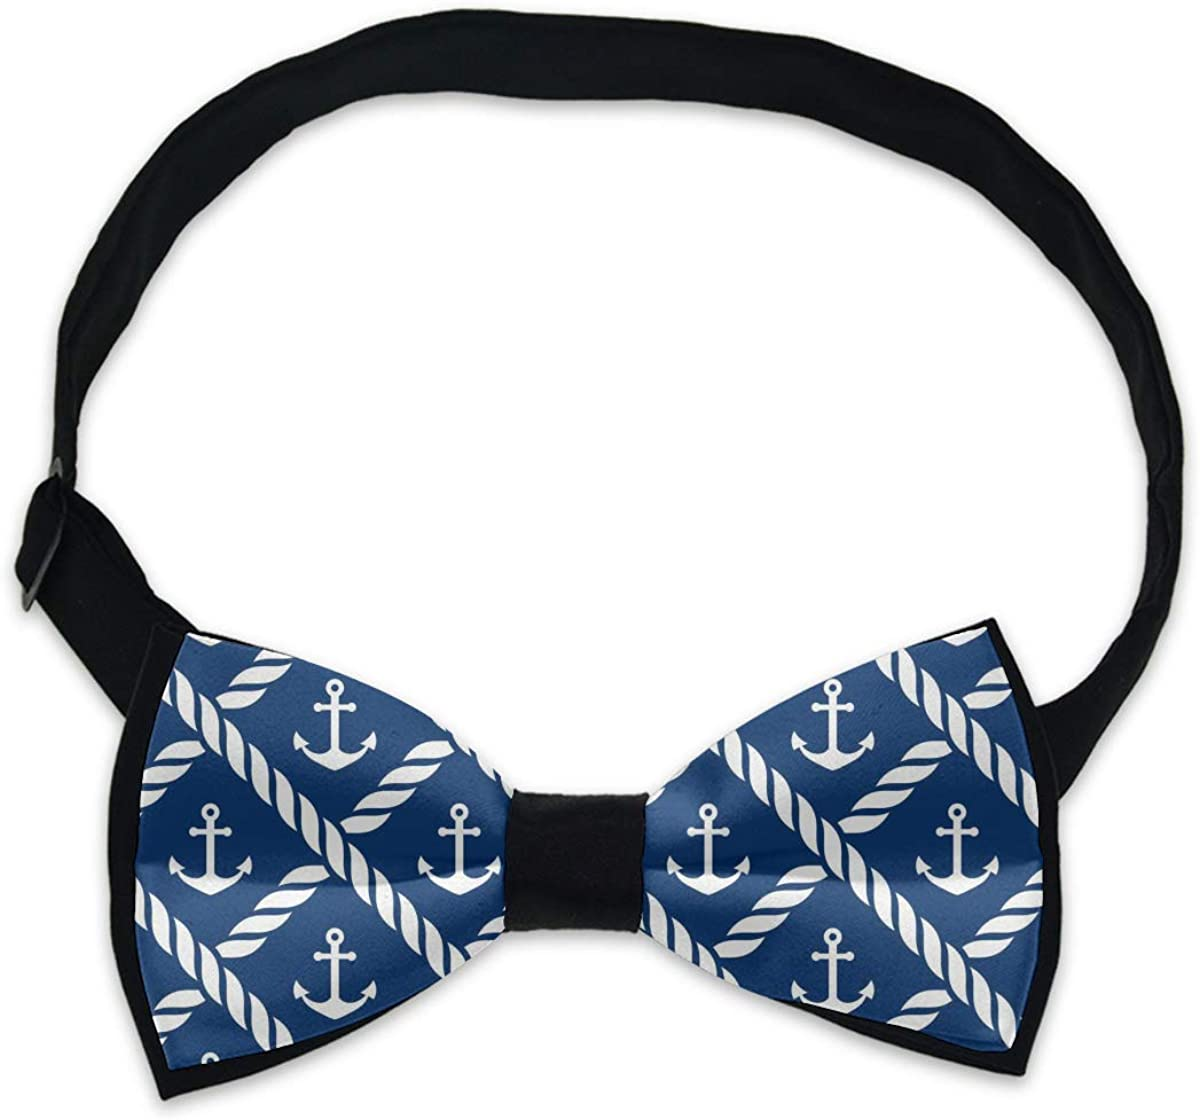 Mens Creative Amazing Bow Tie Gift, Adjustable Bowties Necktie, Casual and Formal